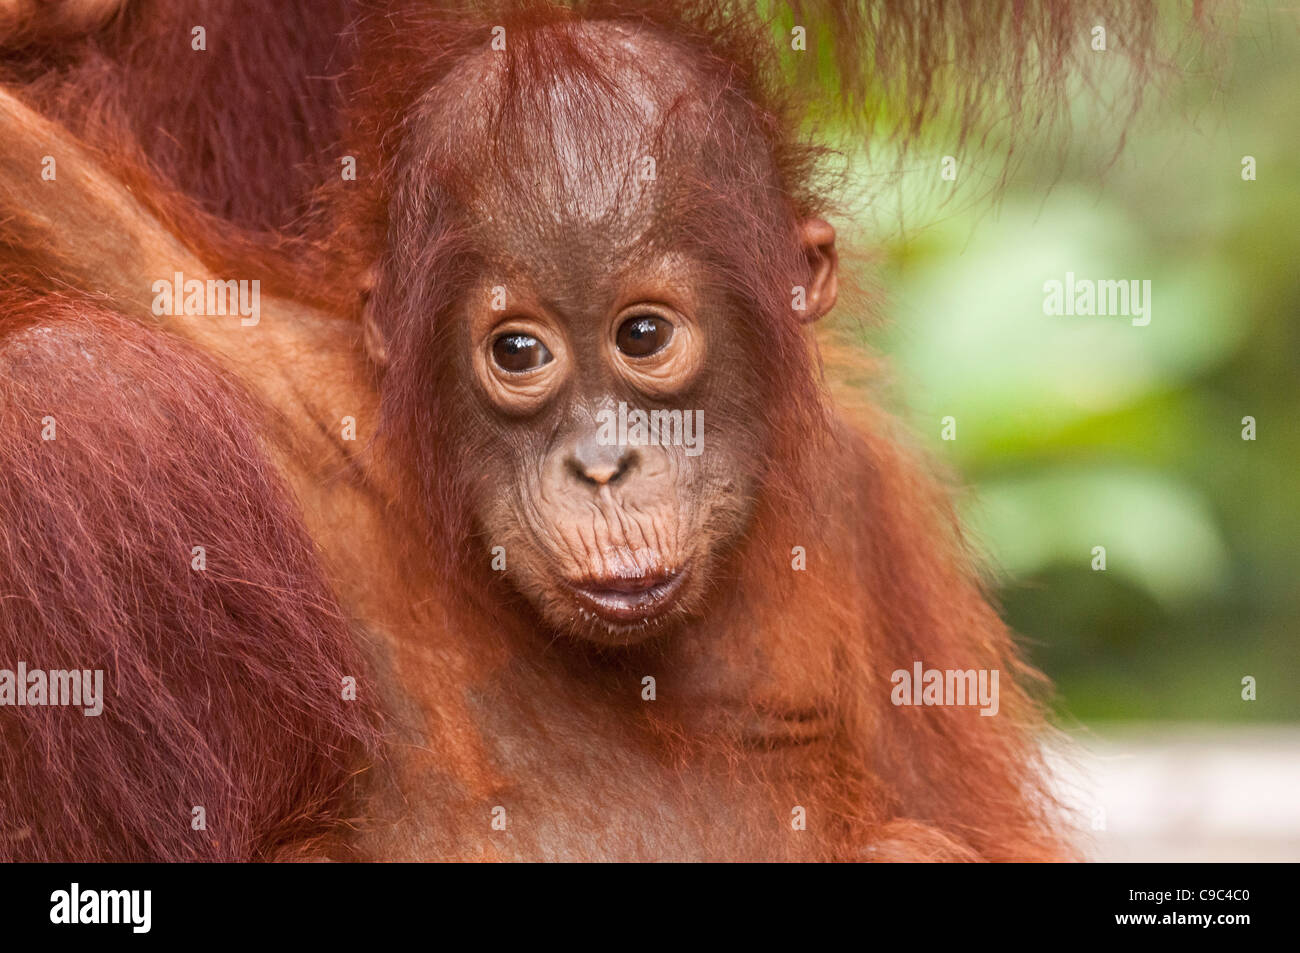 Infant Bornean orangutan with mother (just out of frame). Horizontal format with copyspace. - Stock Image